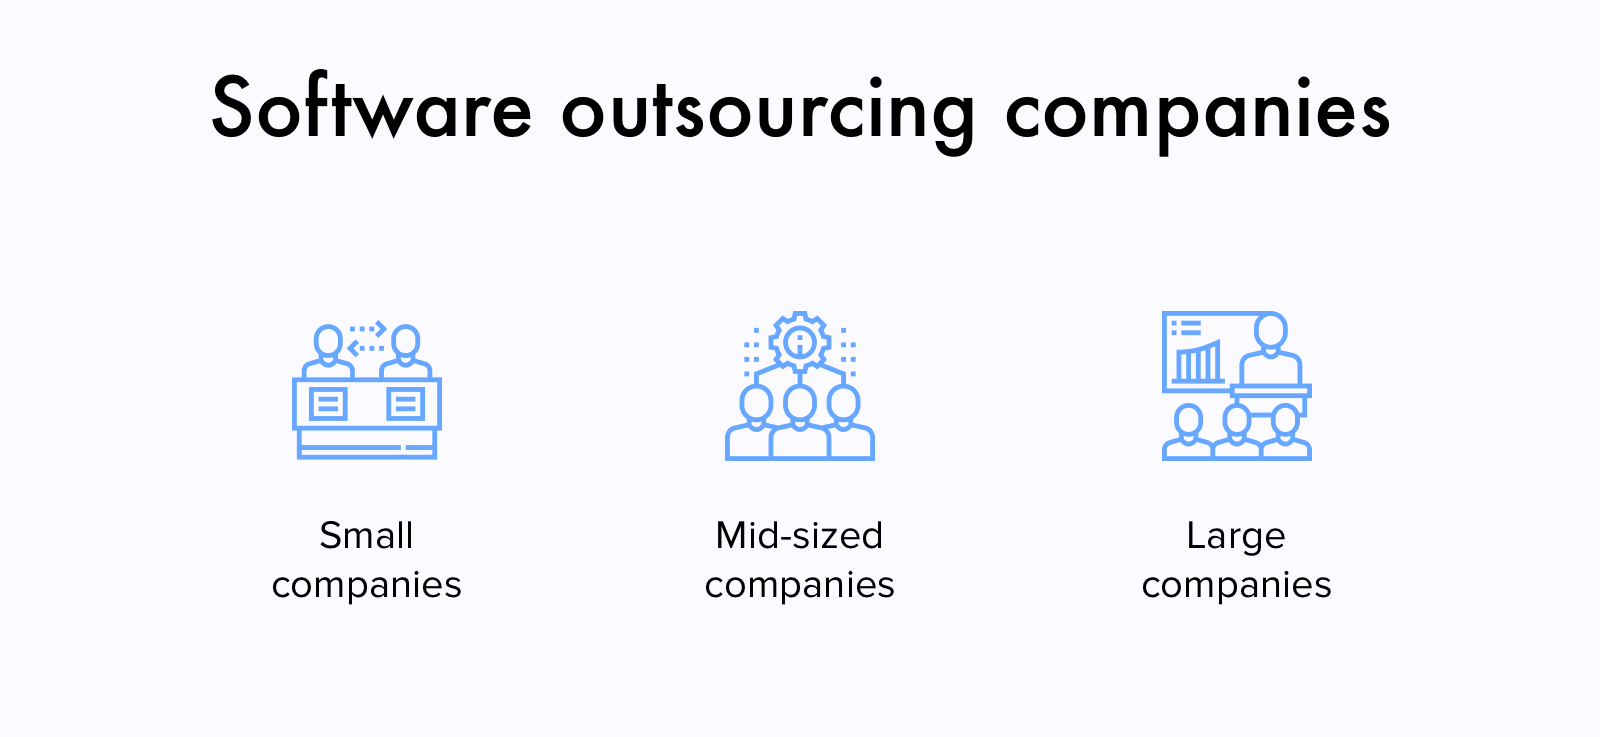 Outsourcing software development companies by size